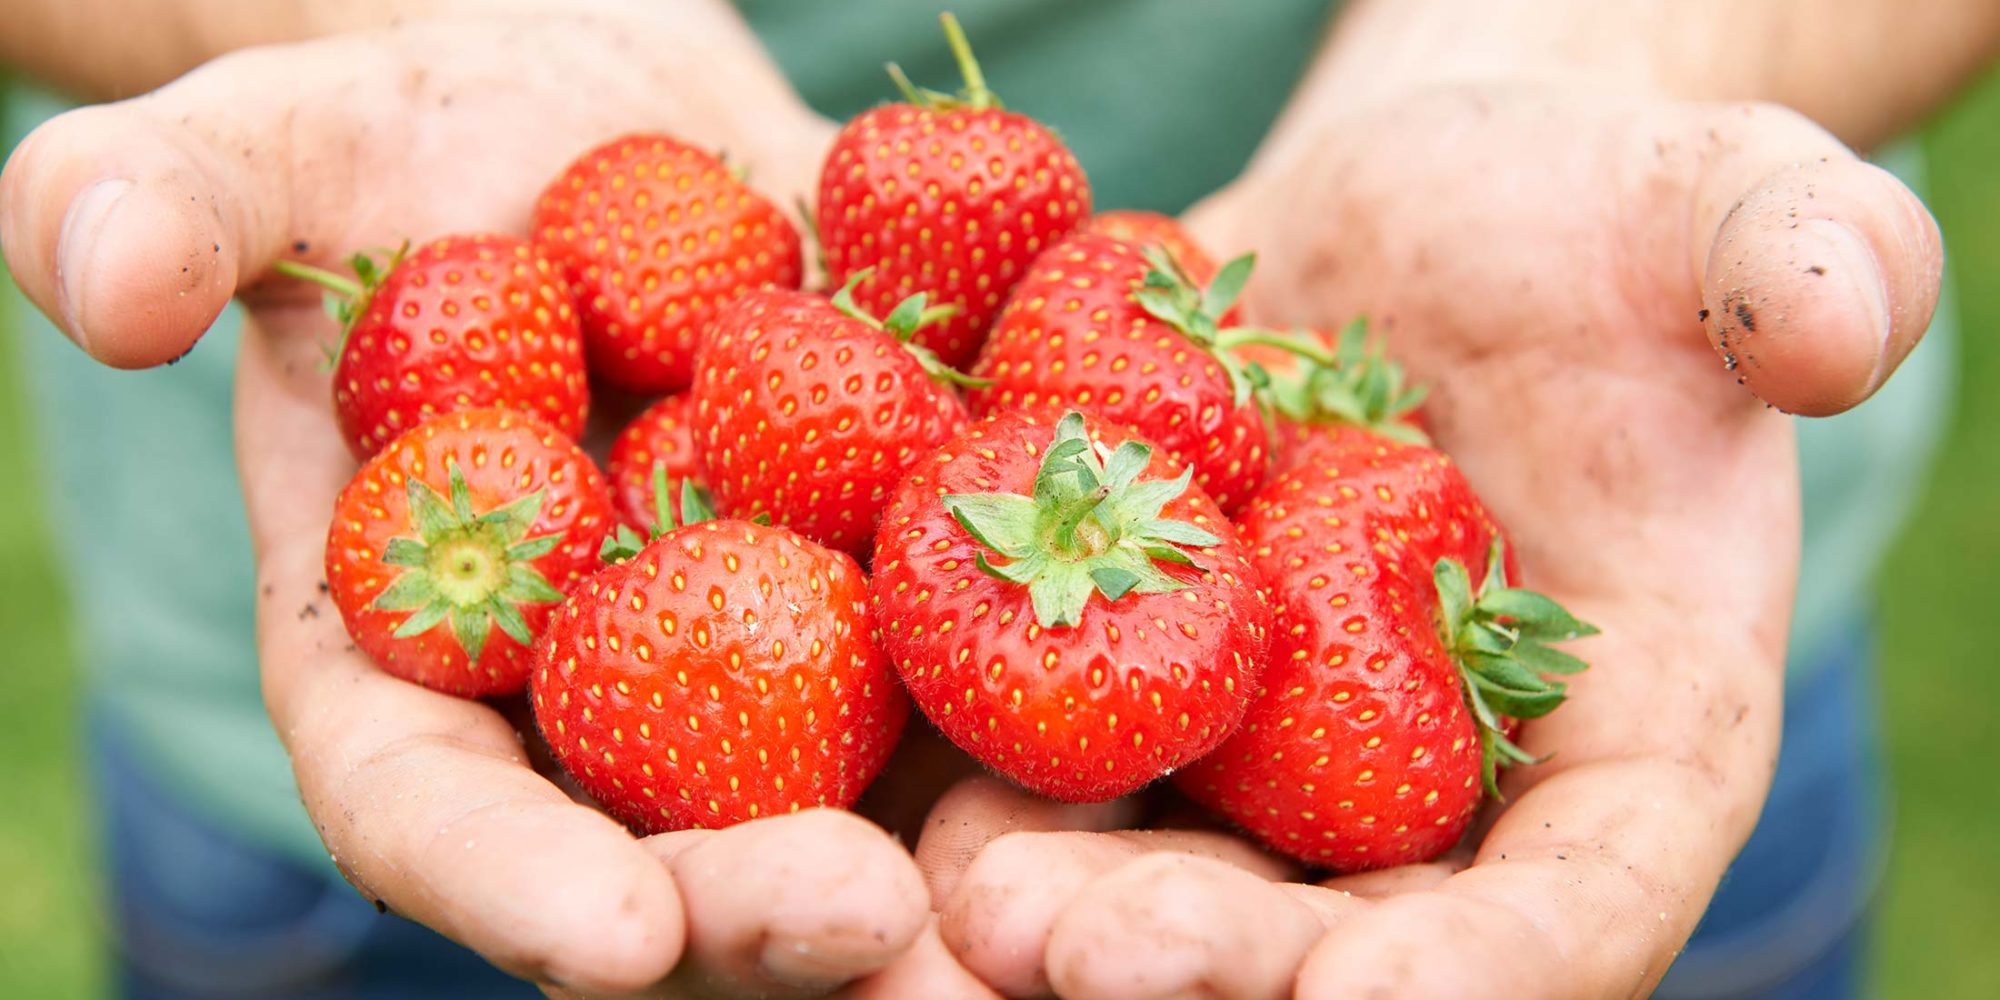 Image of hands holding freshly picked strawberries